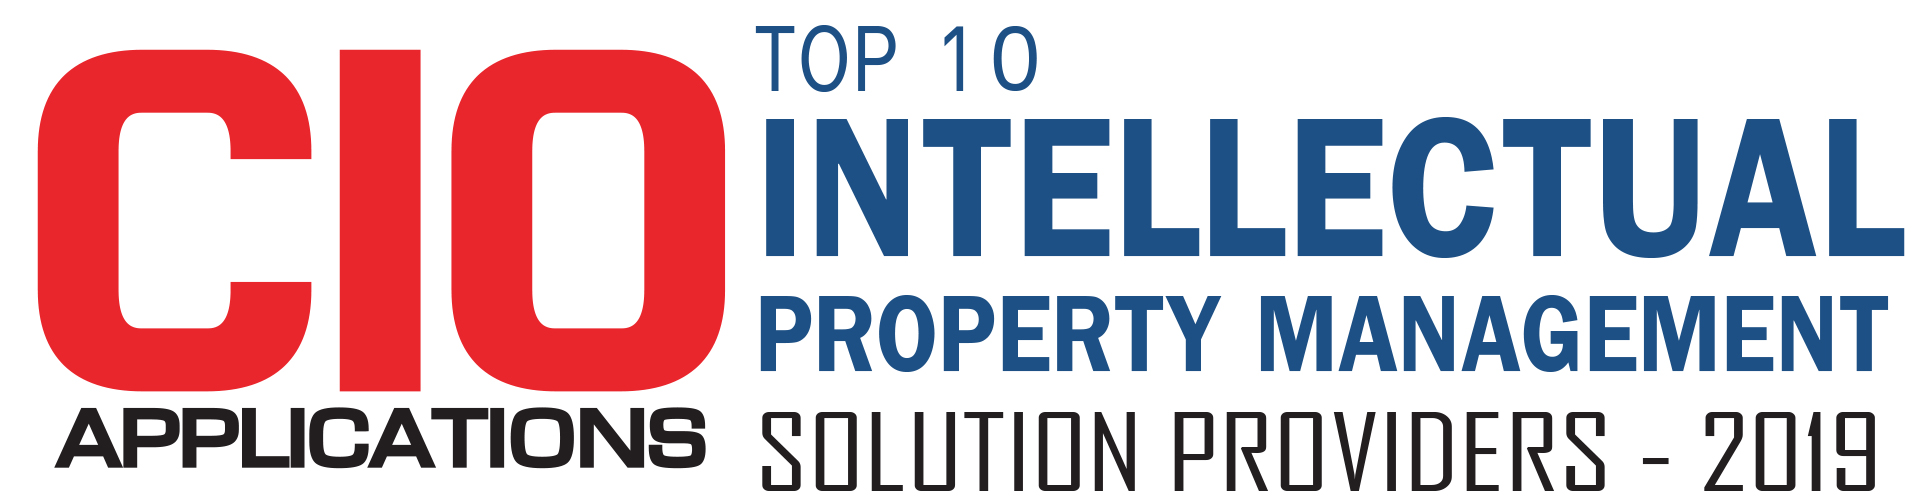 Top 10 Intellectual Property Management Solution Companies - 2019